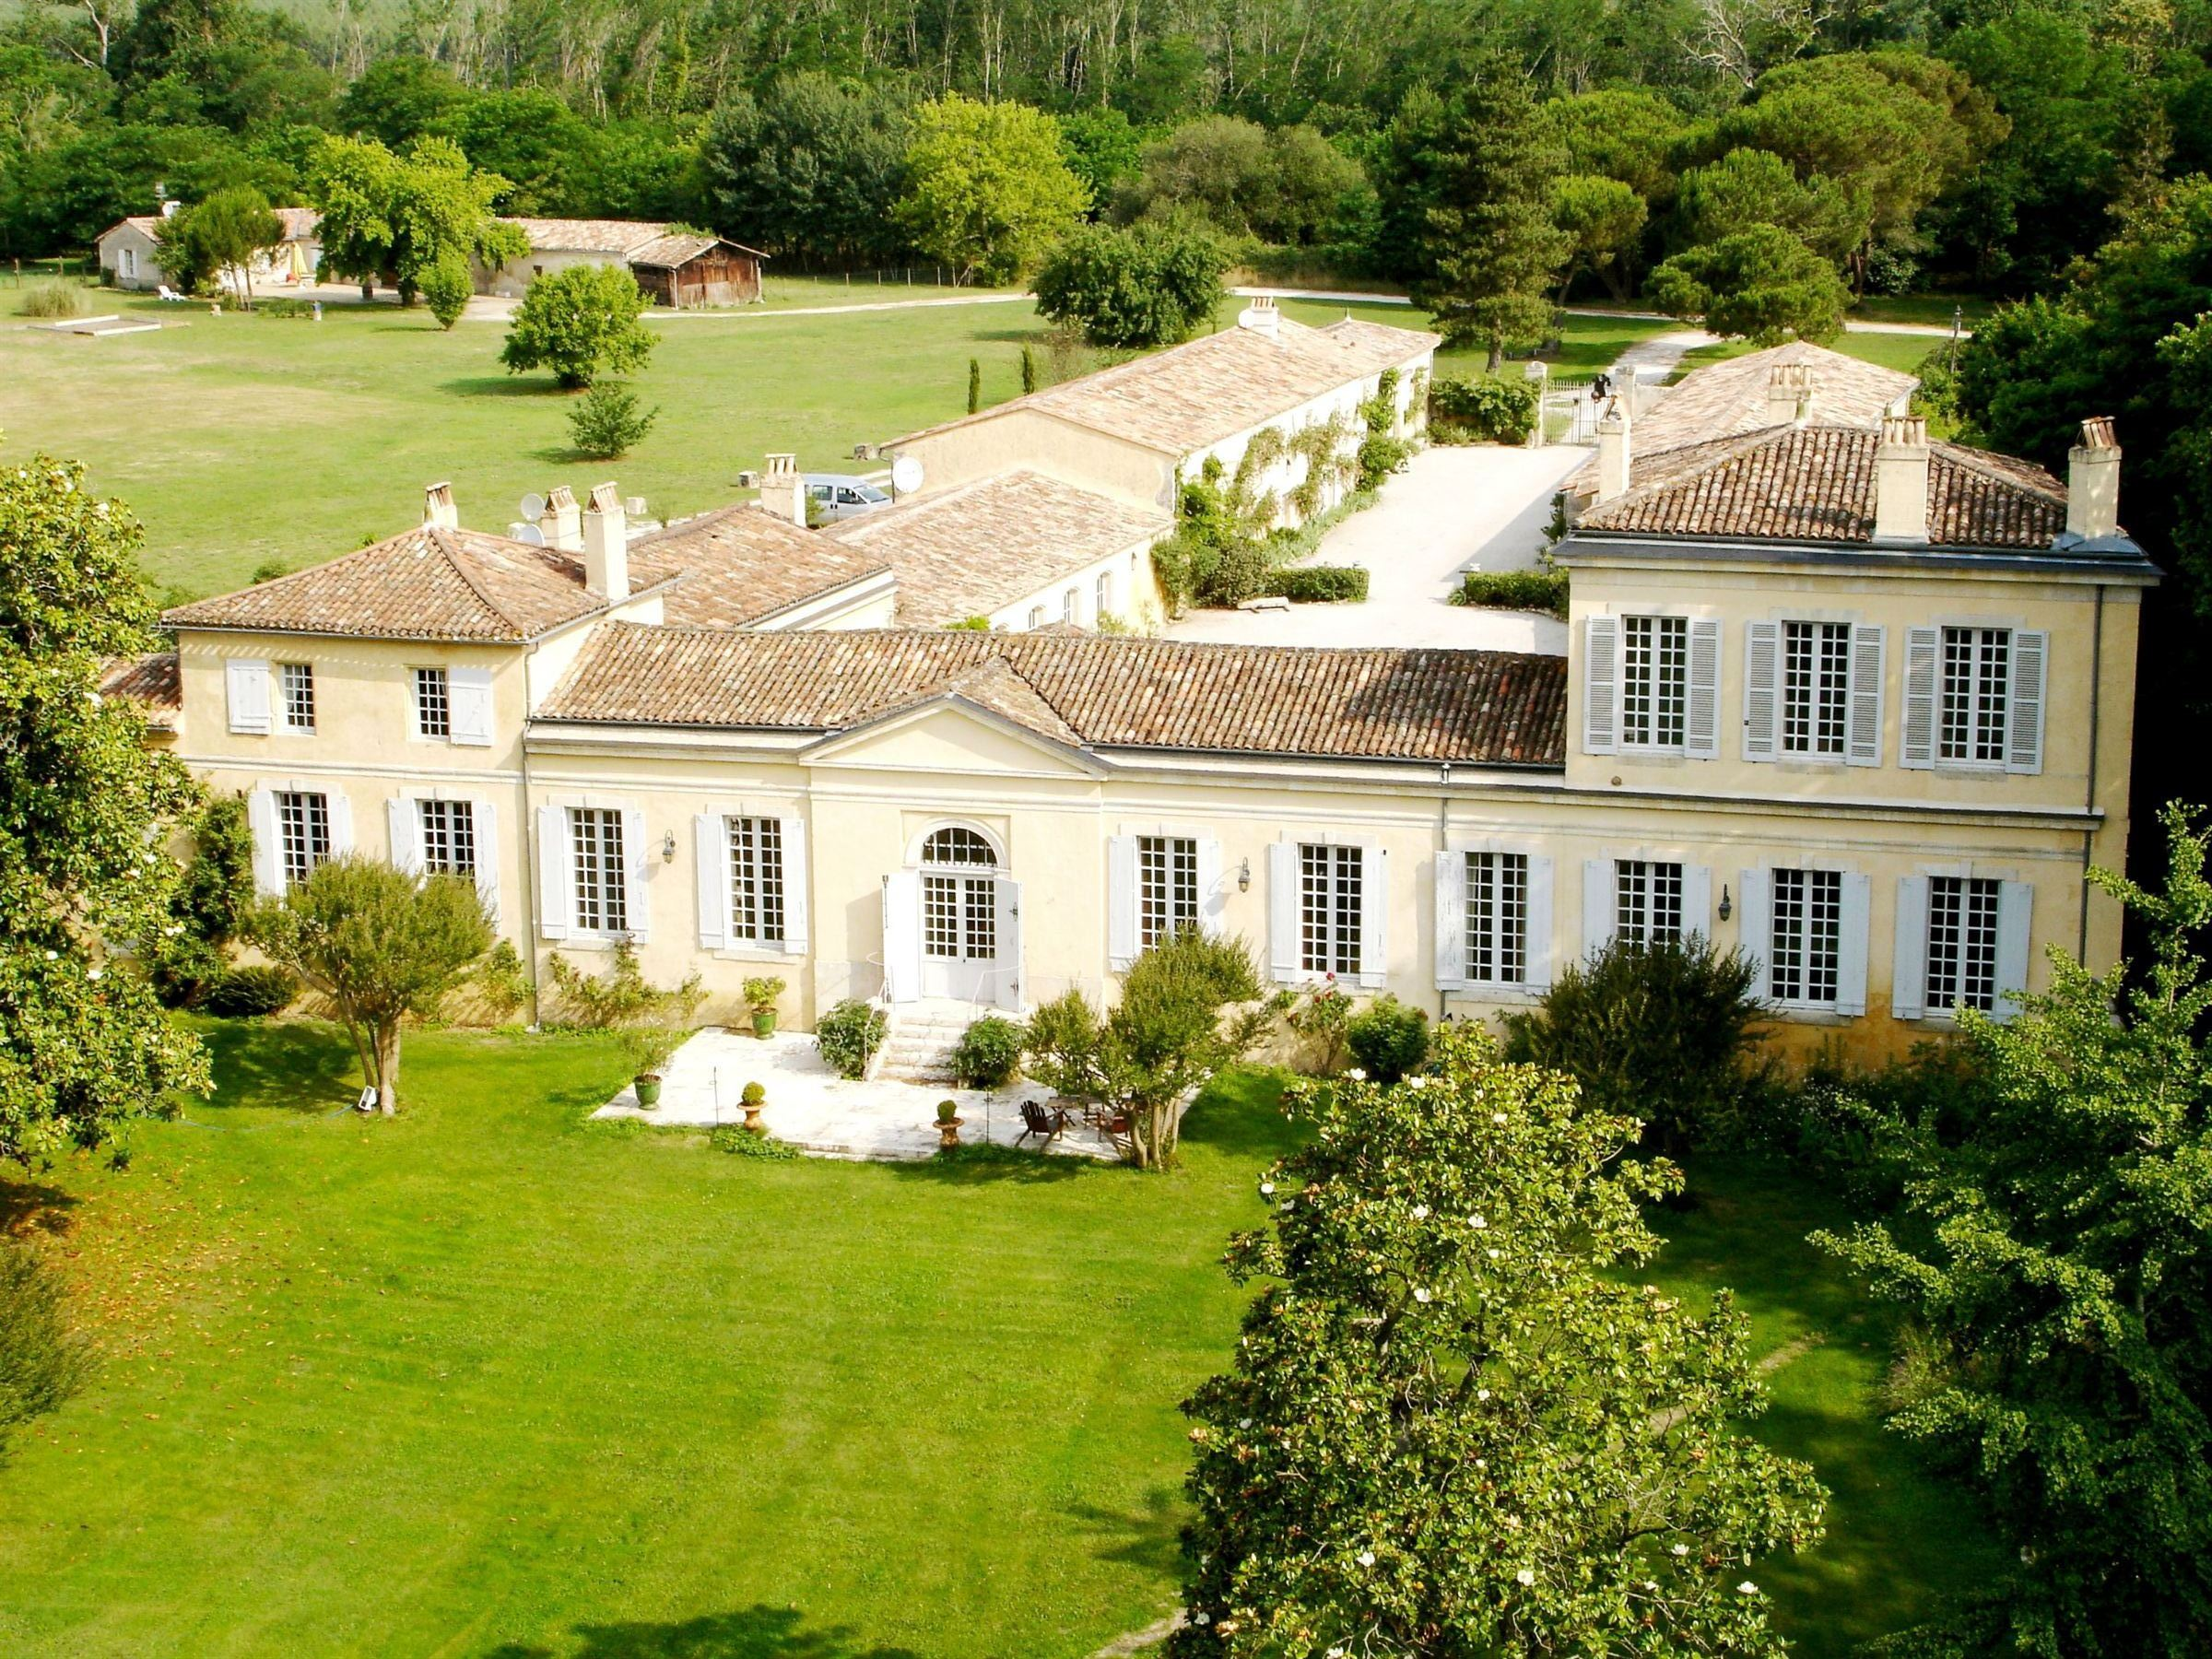 Villa per Vendita alle ore STUNNING ESTATE - 10KM FROM DOWNTOWN BORDEAUX- EASY ACCESS TO THE AIRPORT Bordeaux, Aquitania, 33000 Francia